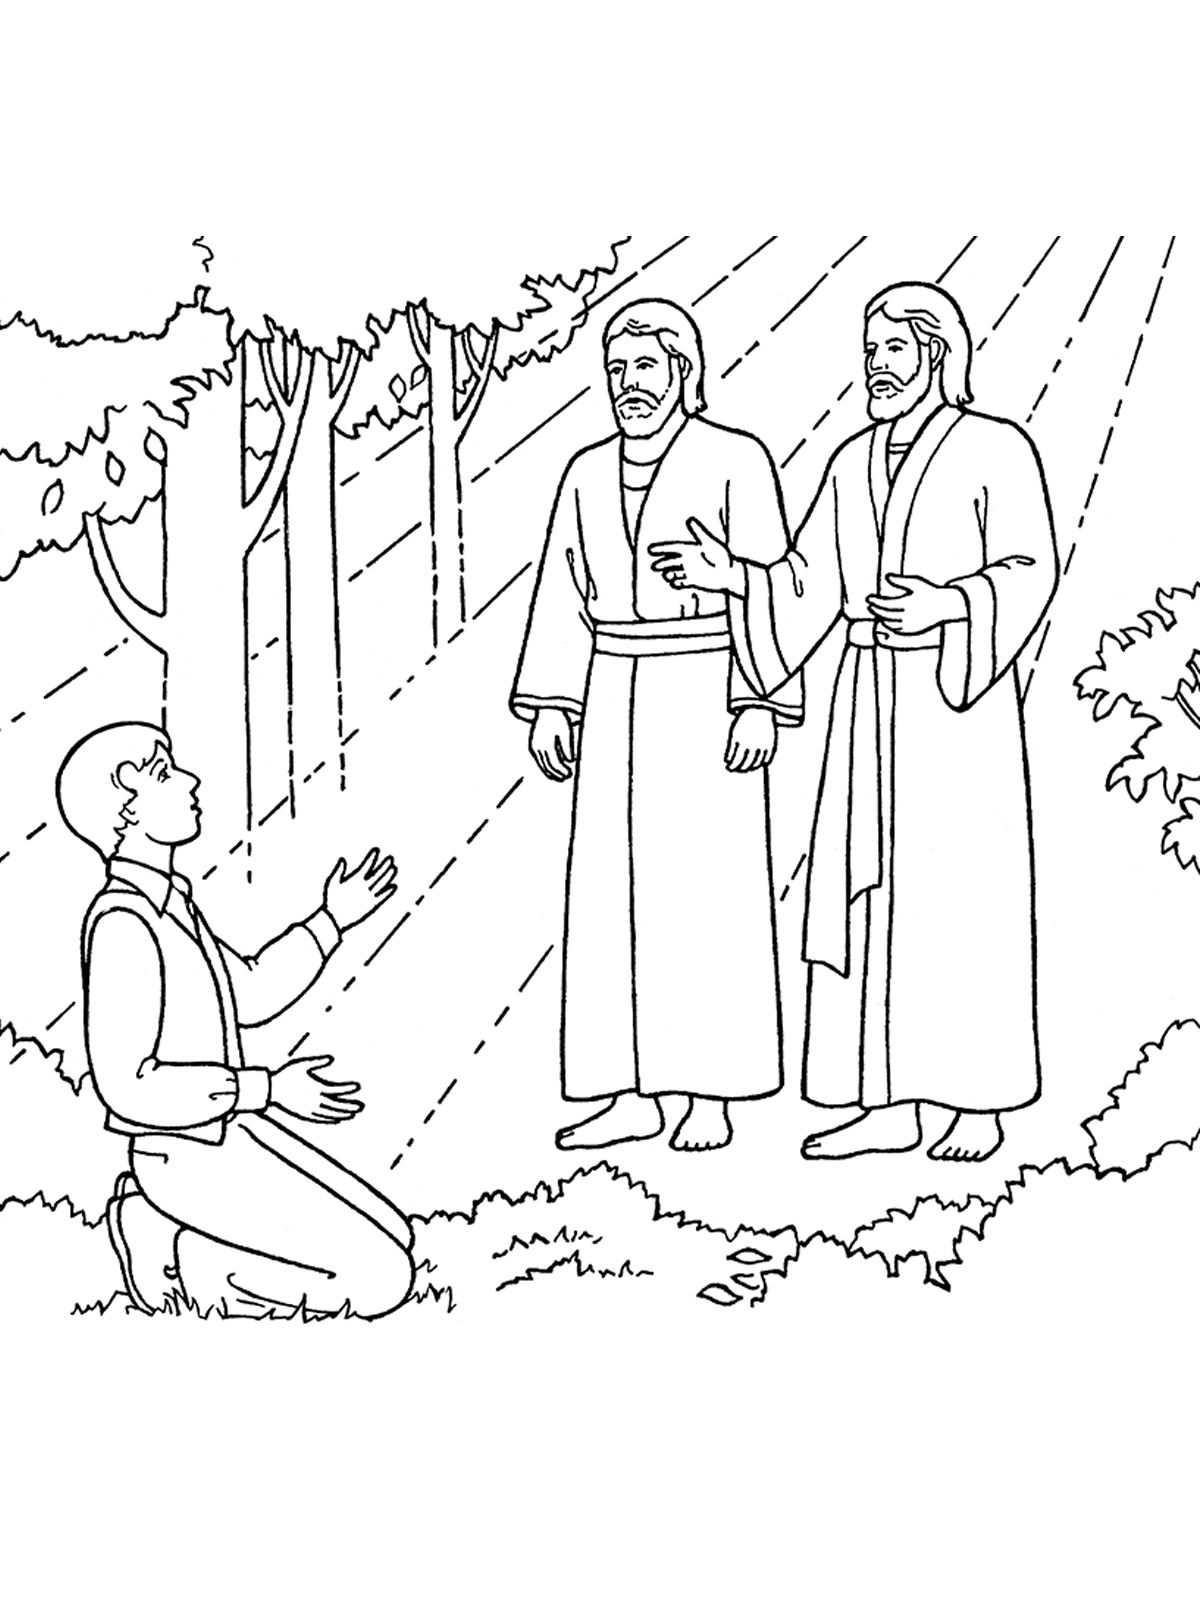 Lds clipart joseph smith. An illustration of seeing